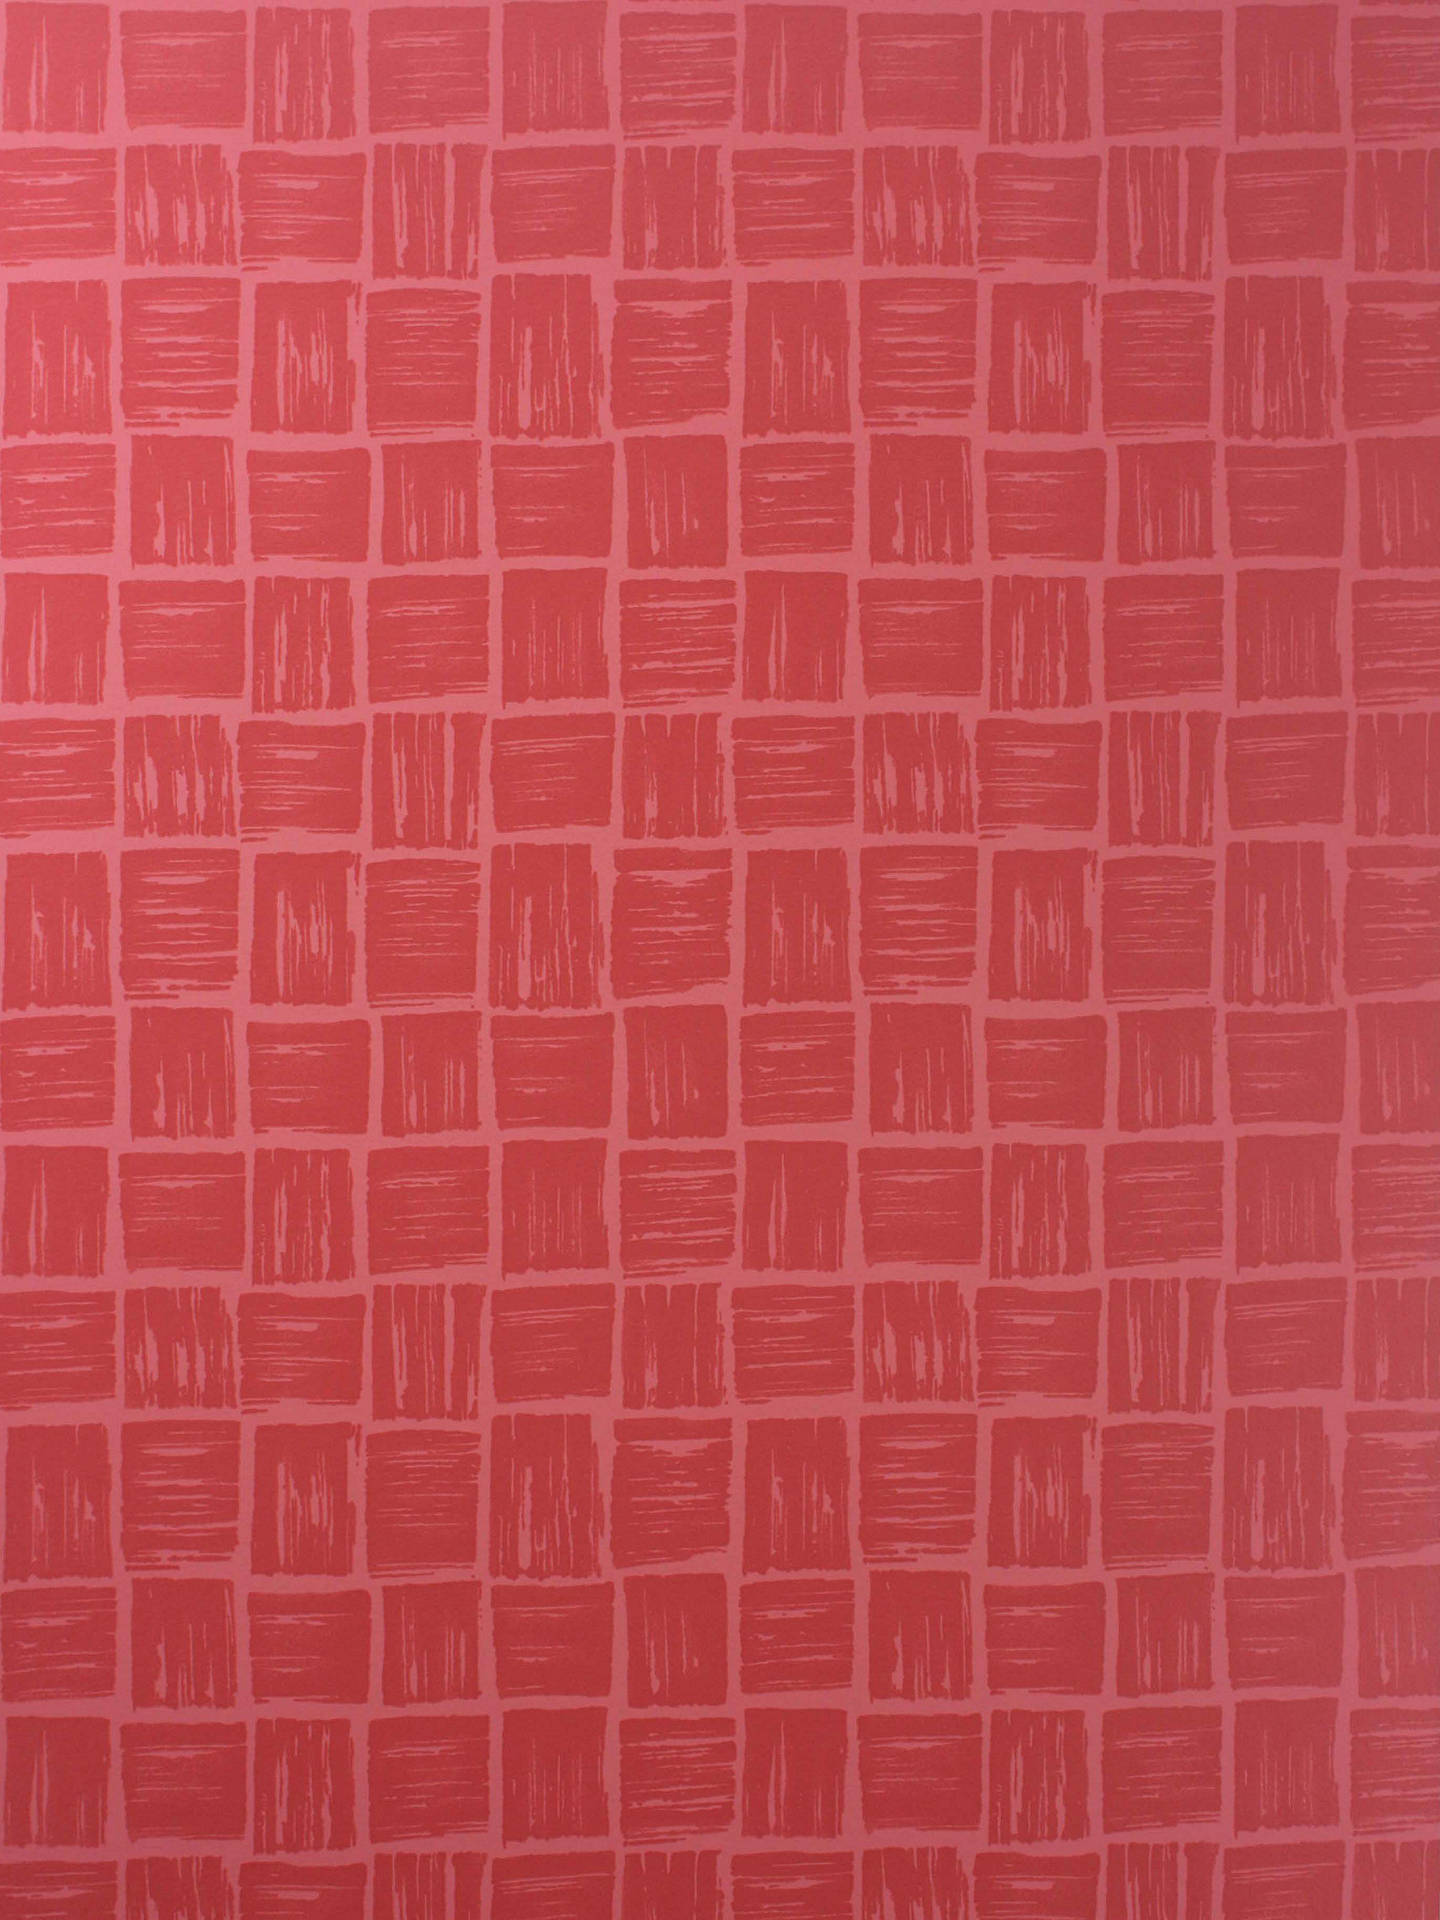 BuyNina Campbell Mahayana Wallpaper, Red, NCW4185-01 Online at johnlewis.com